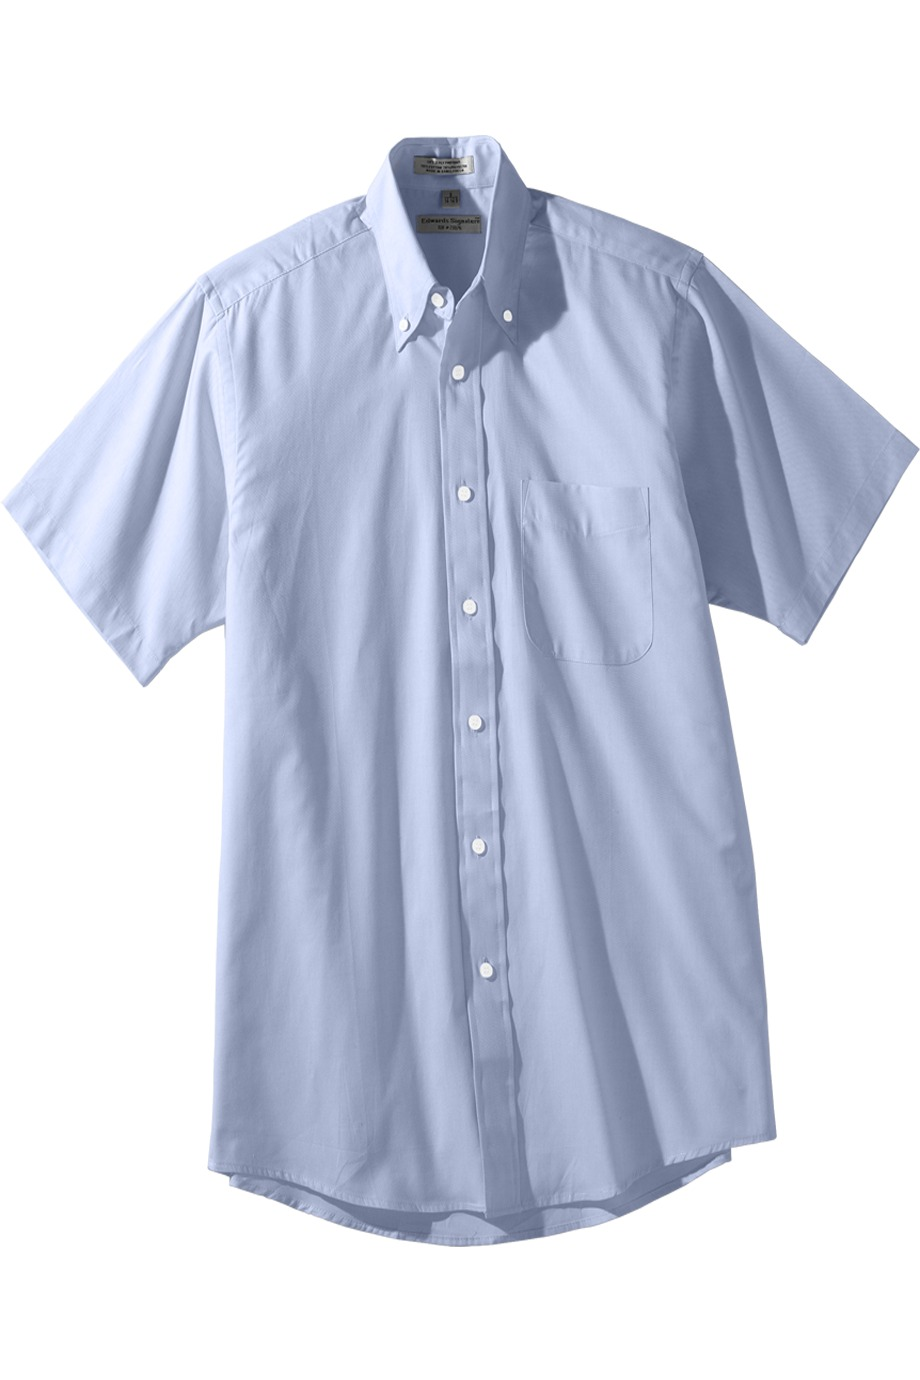 Mens Pinpoint Dress Shirts